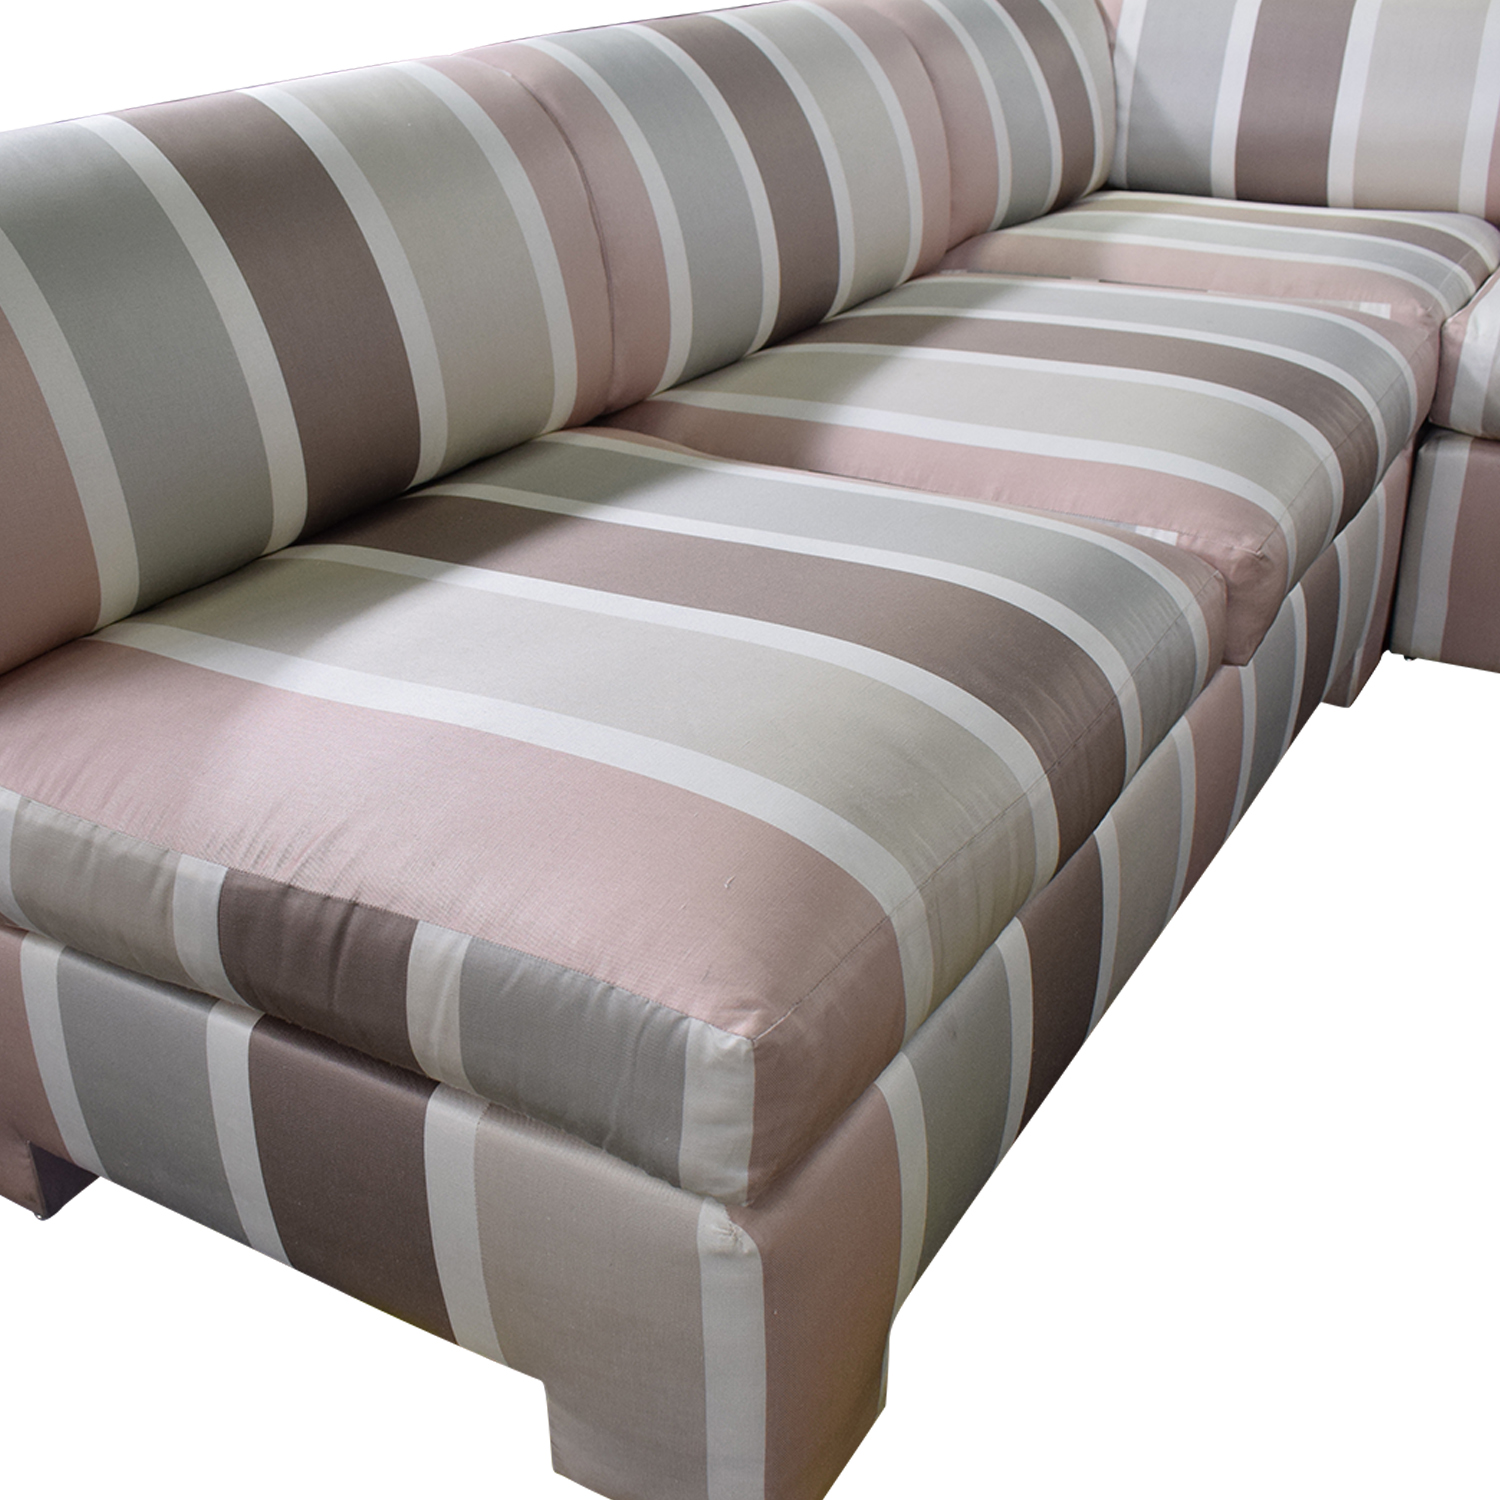 Custom Pink Striped Sectional Sofa